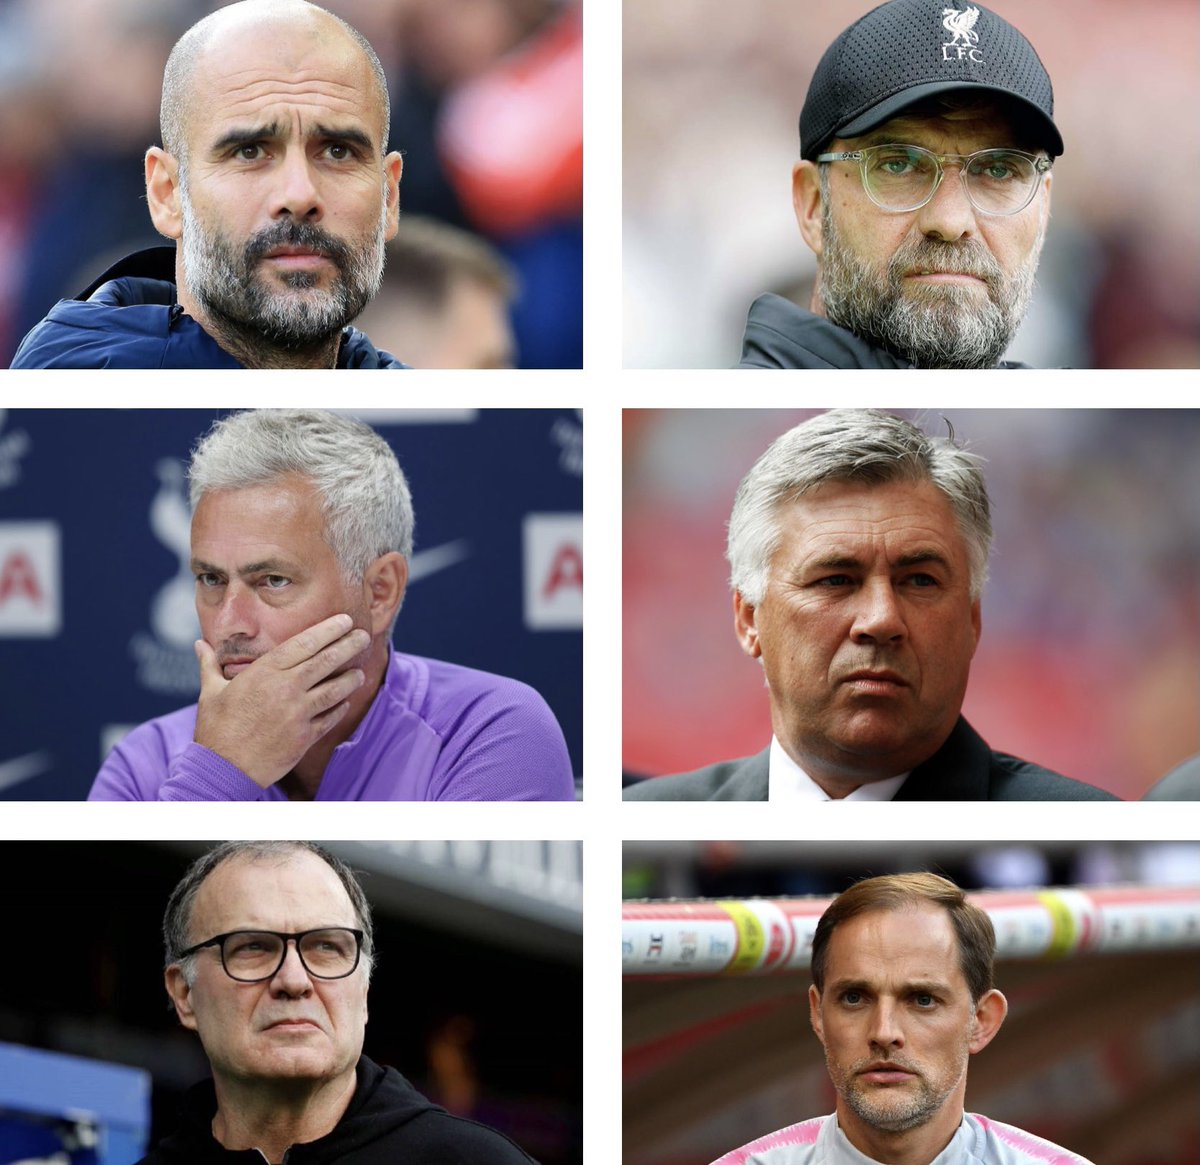 Elite English Premier League #PL managers! Excited for the seasons ahead 😇 #MCFC #LFC #THFC #EFC #LUFC #CFC